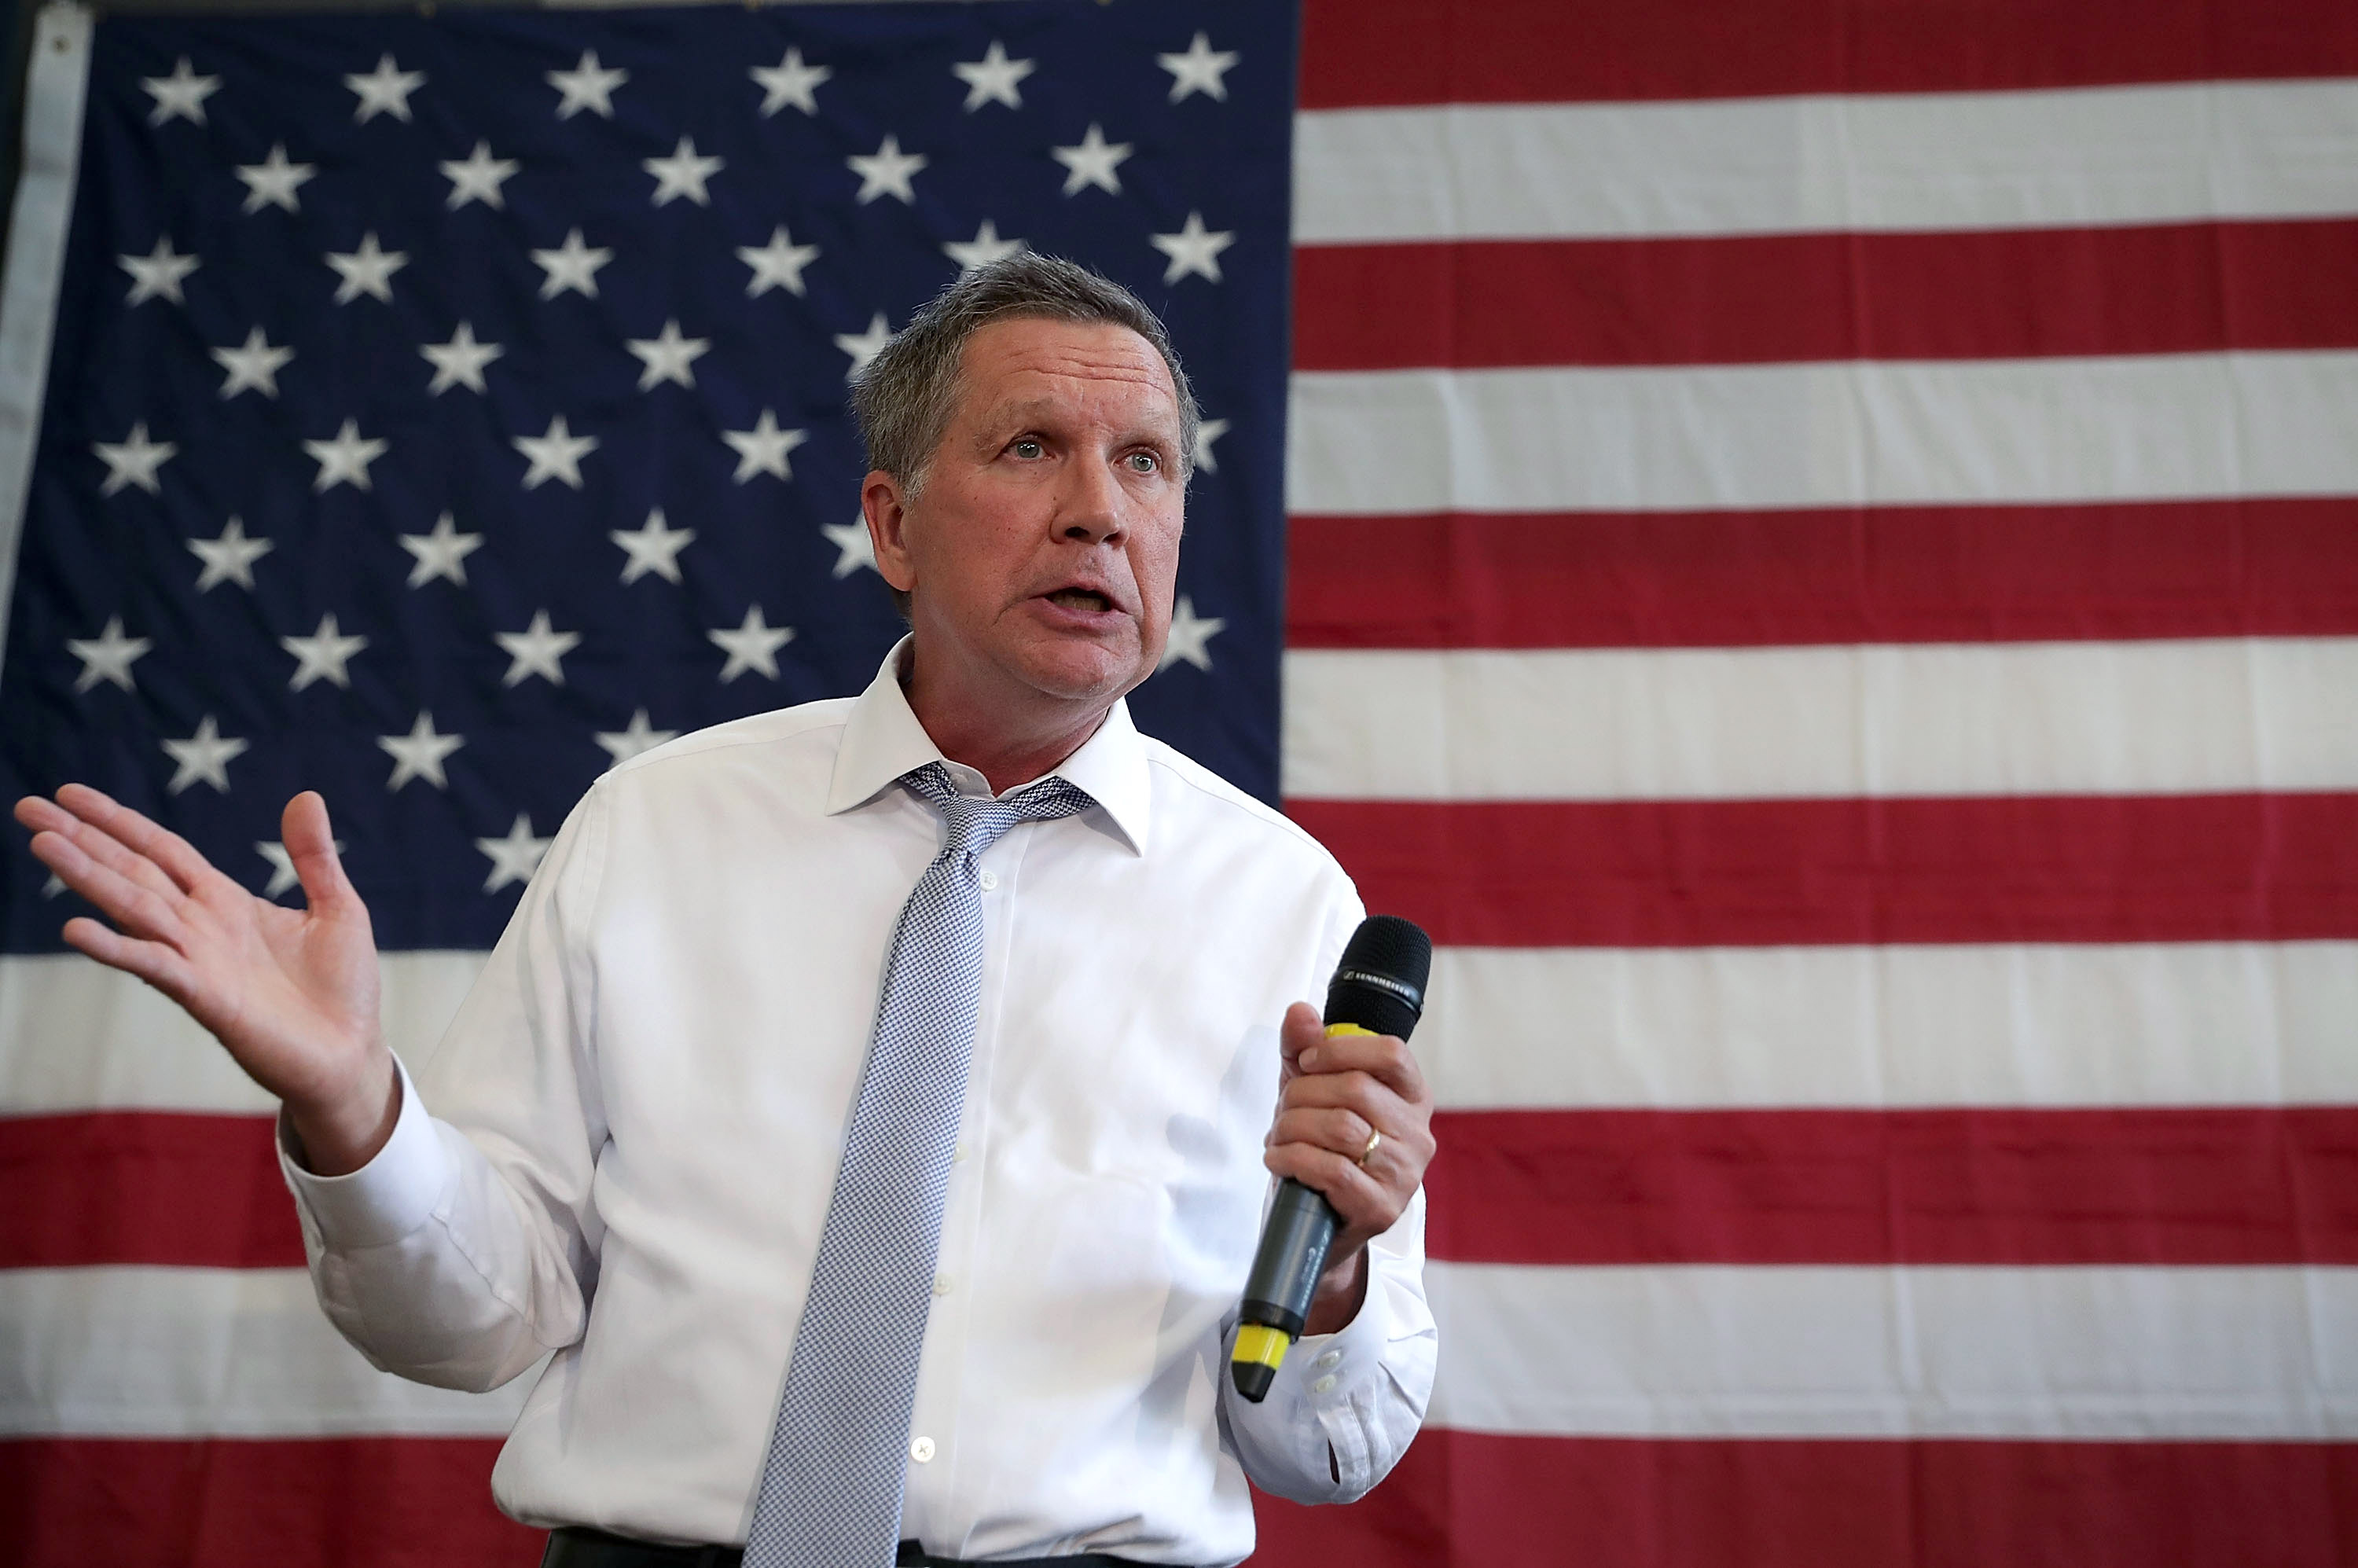 ROCKVILLE, MD - APRIL 25: Republican presidential candidate and Ohio Governor John Kasich speaks during a campaign event April 25, 2016 in Rockville, Maryland. Governor Kasich continued to seek for his party??s nomination for the general election.